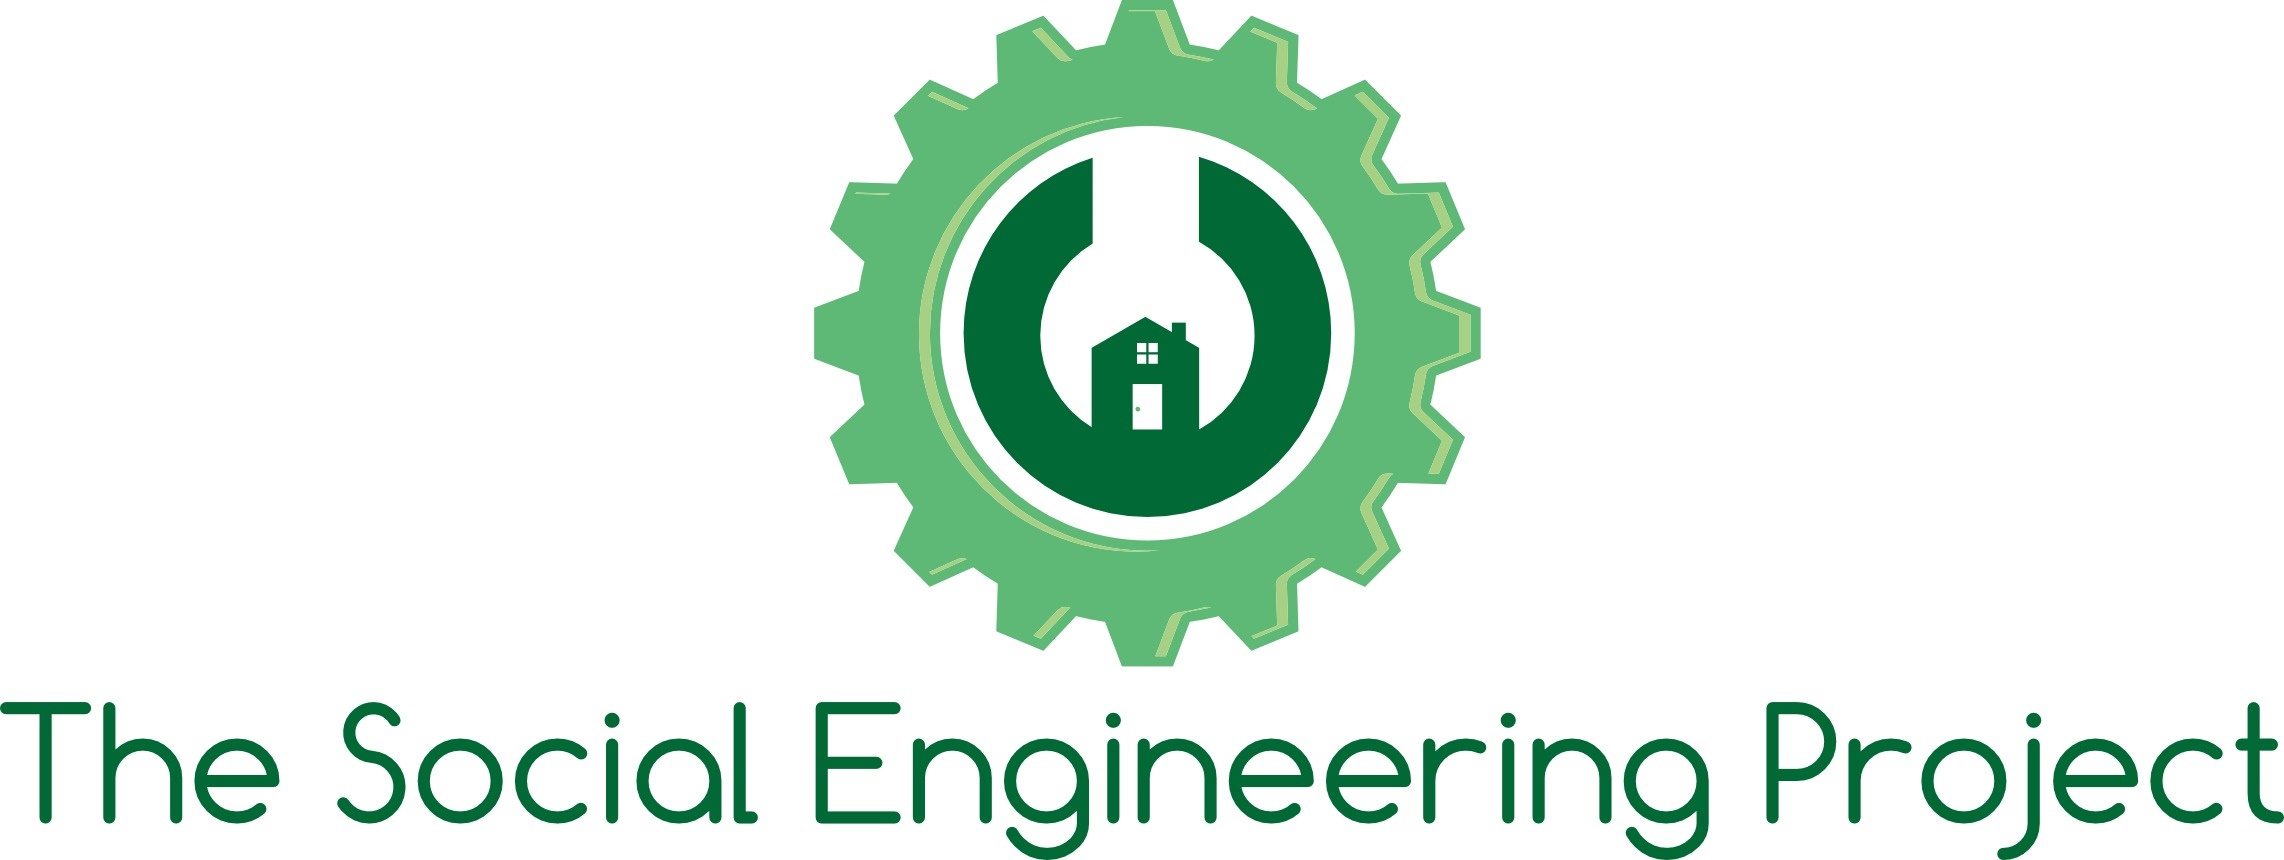 thesocialengineeringproject-logo.jpg